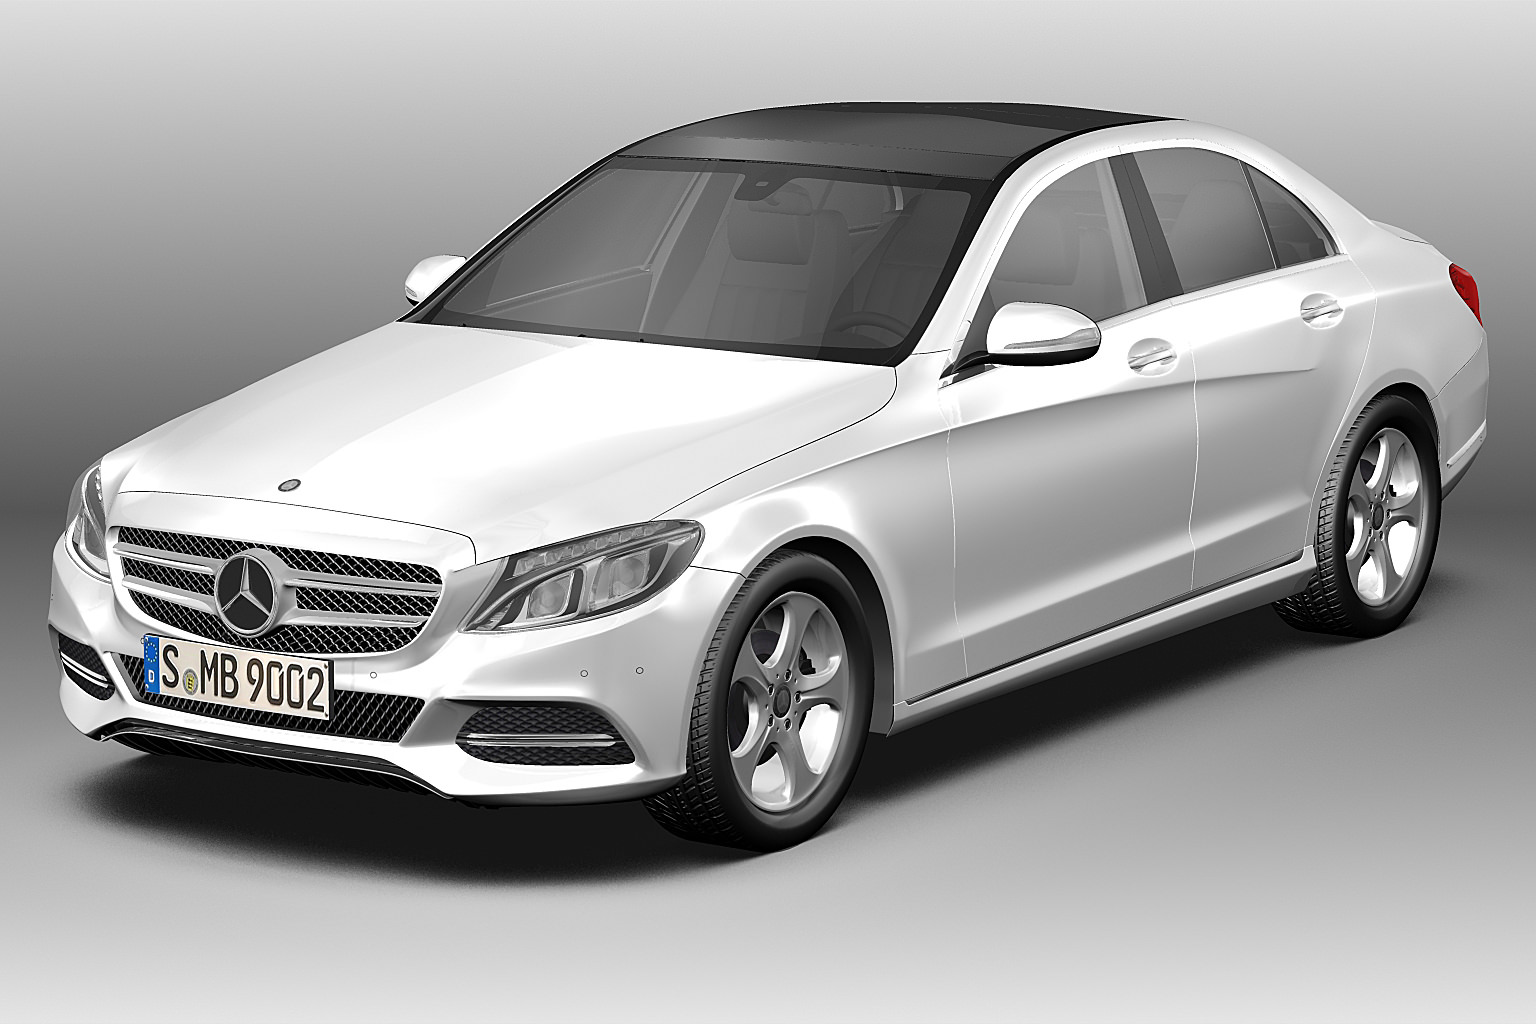 2014 mercedes benz c class 3d model max obj 3ds fbx c4d for Mercedes benz e class models